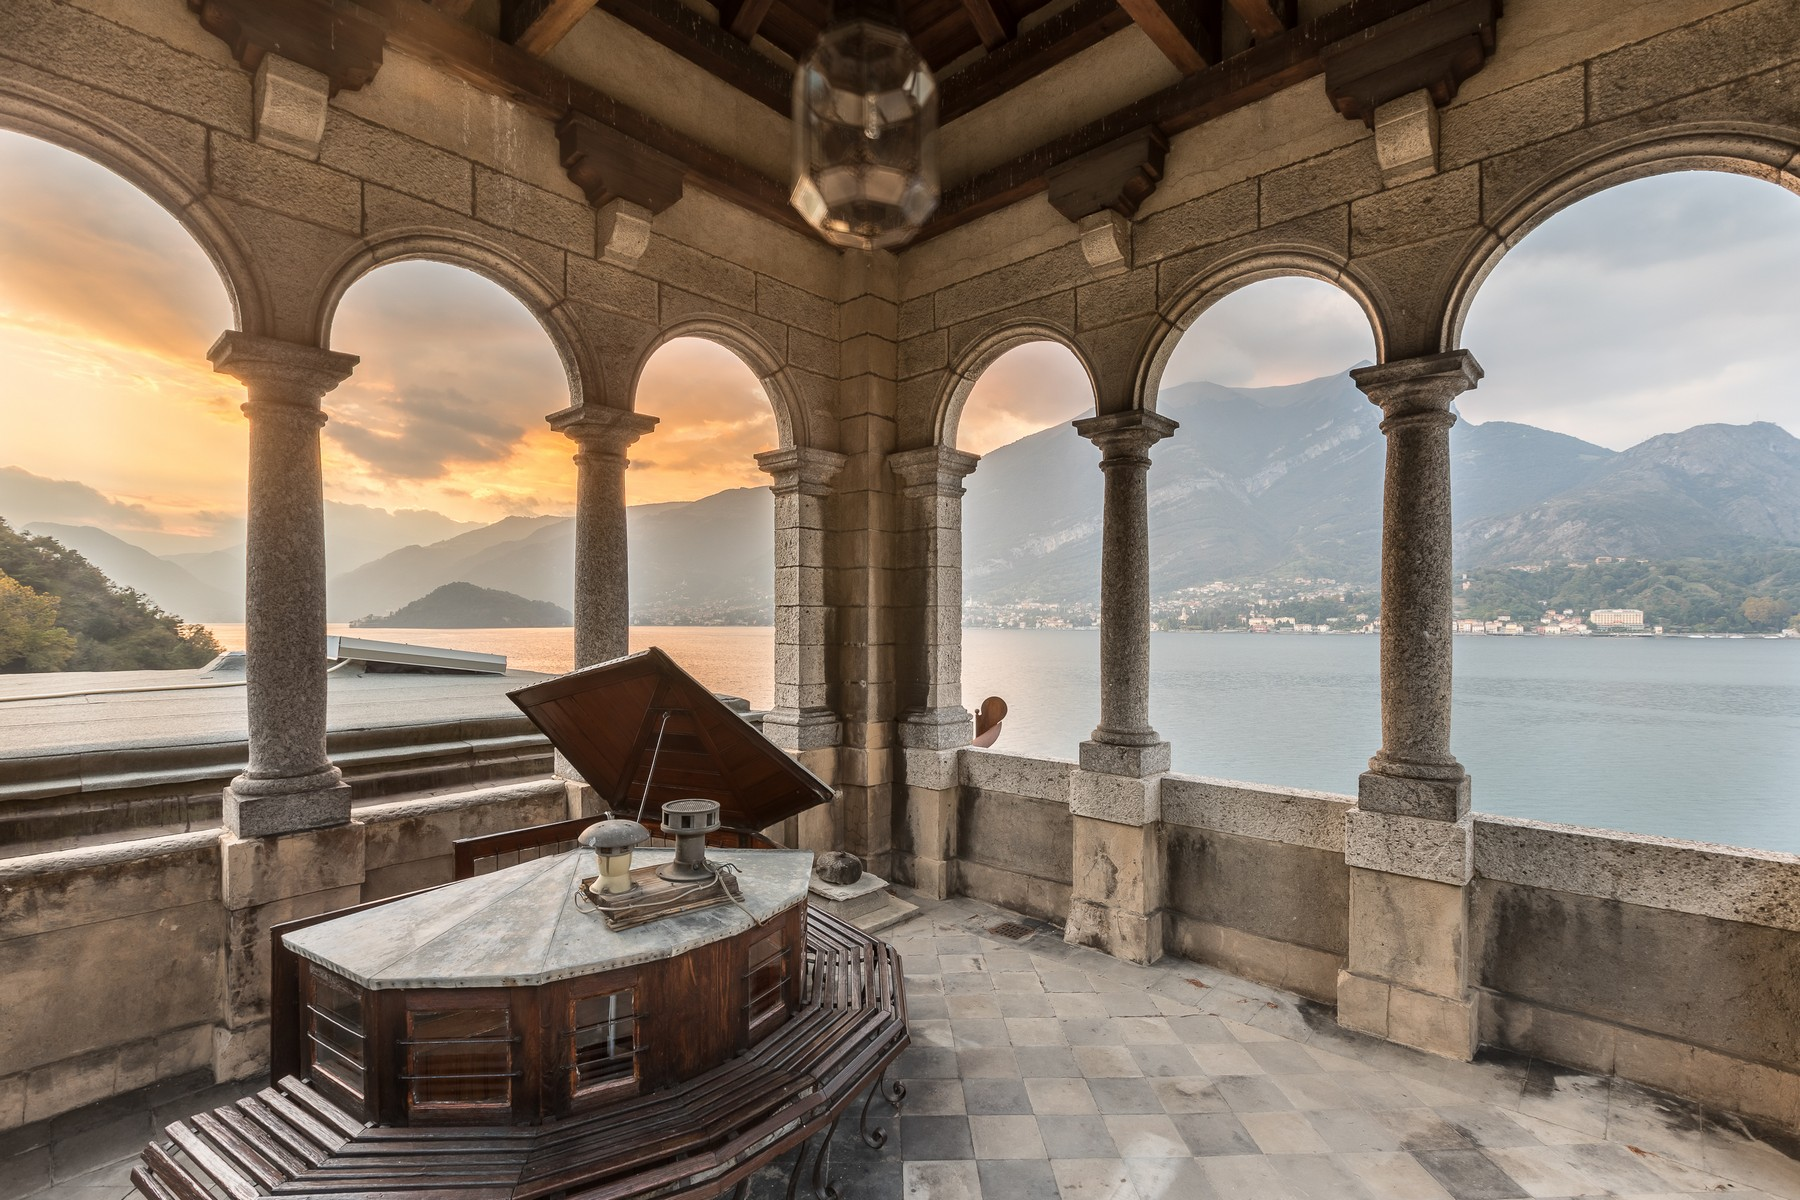 Property Of Magnificent villa Liberty pieds dans l'eau on Lake Como